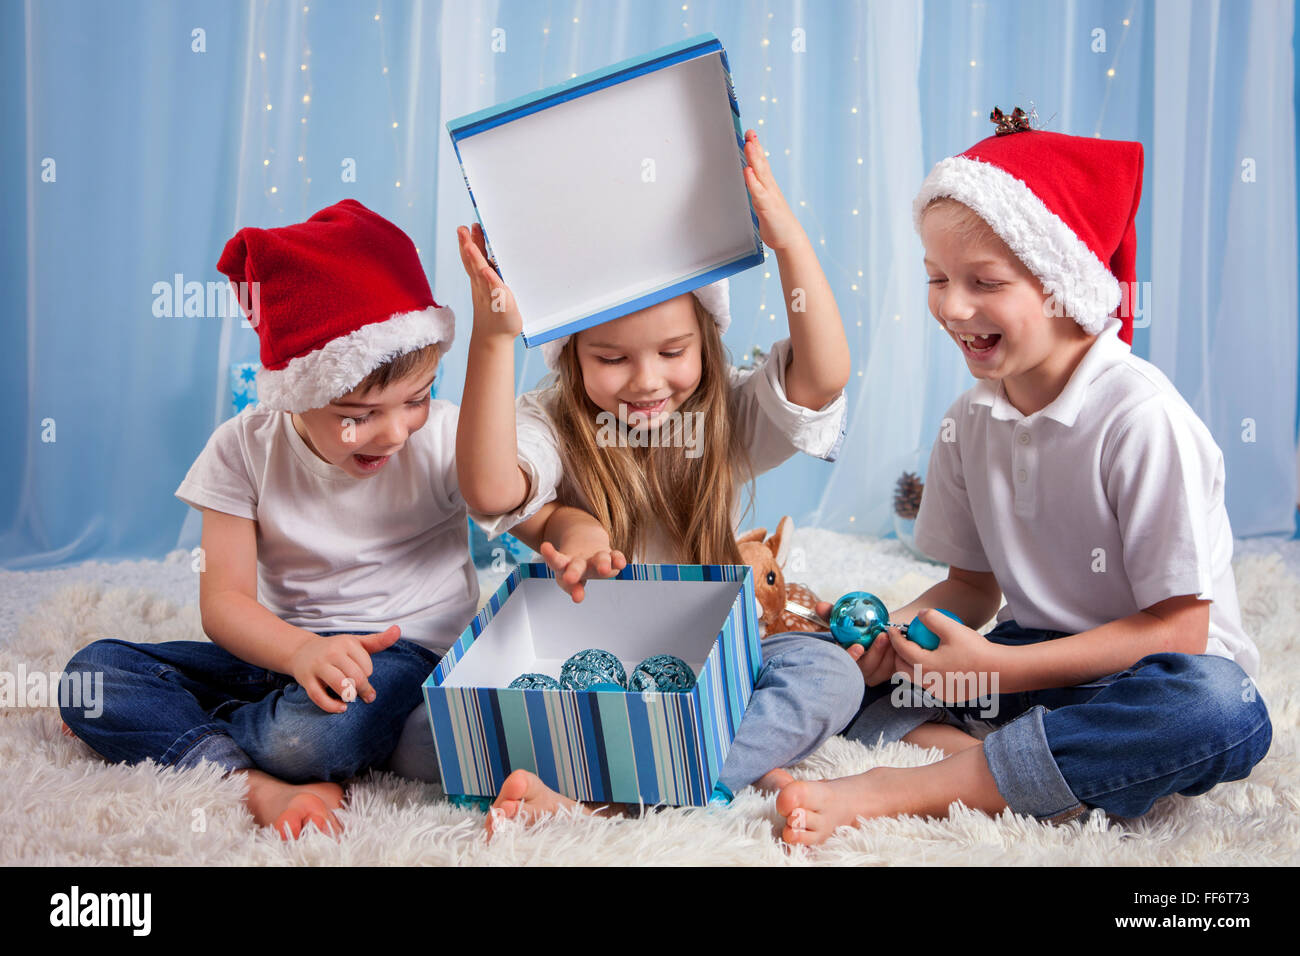 Three adorable kids, preschool children, siblings, having fun for Christmas, opening box with decoration, studio - Stock Image